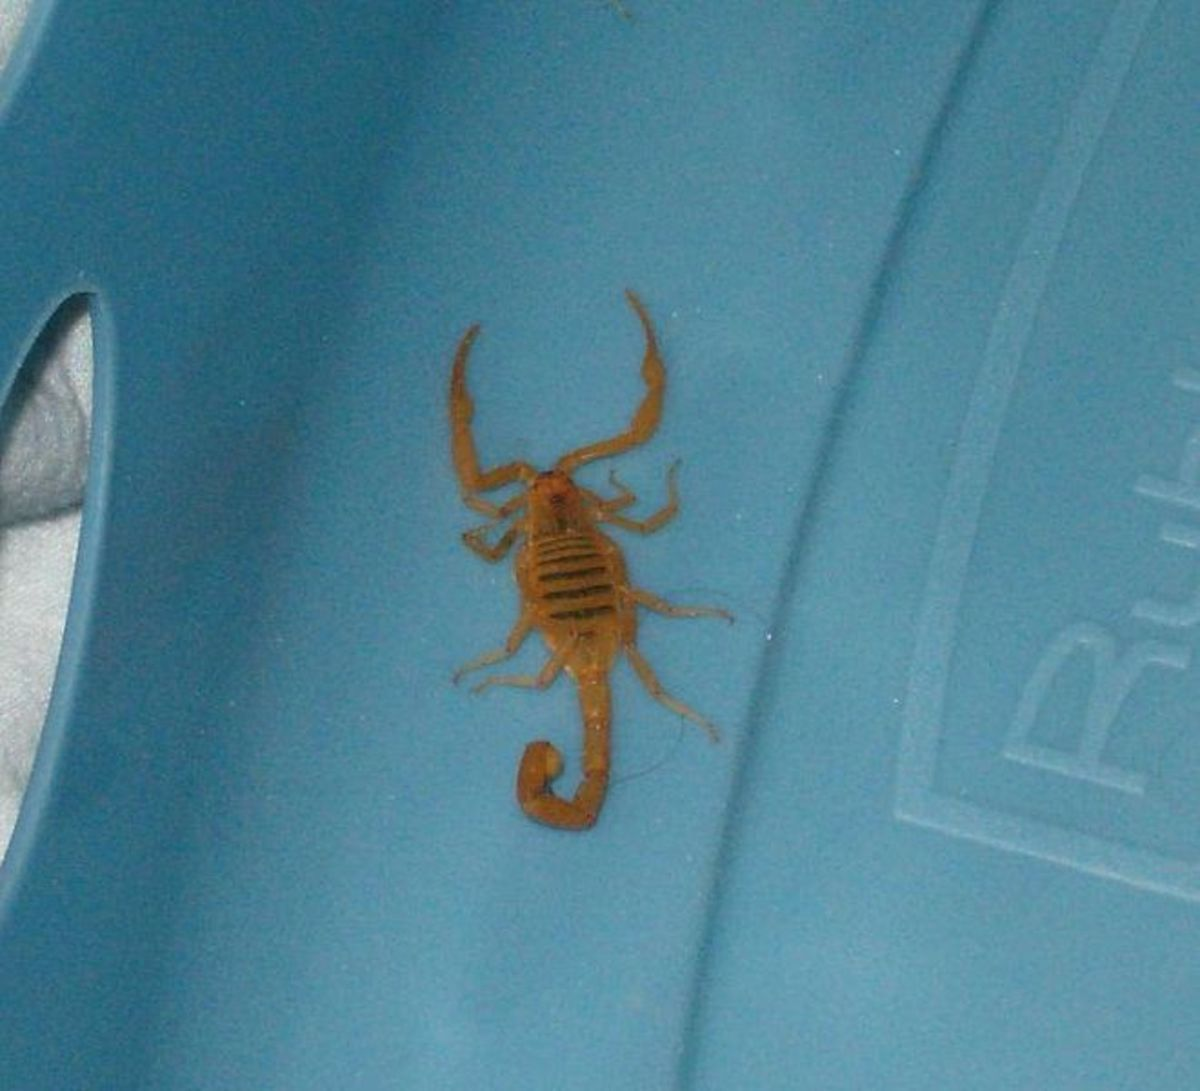 This one was found in the bottom of a laundry basket in Chandler, Arizona... a good case for not having laundry baskets outdoors in the southwest U.S.